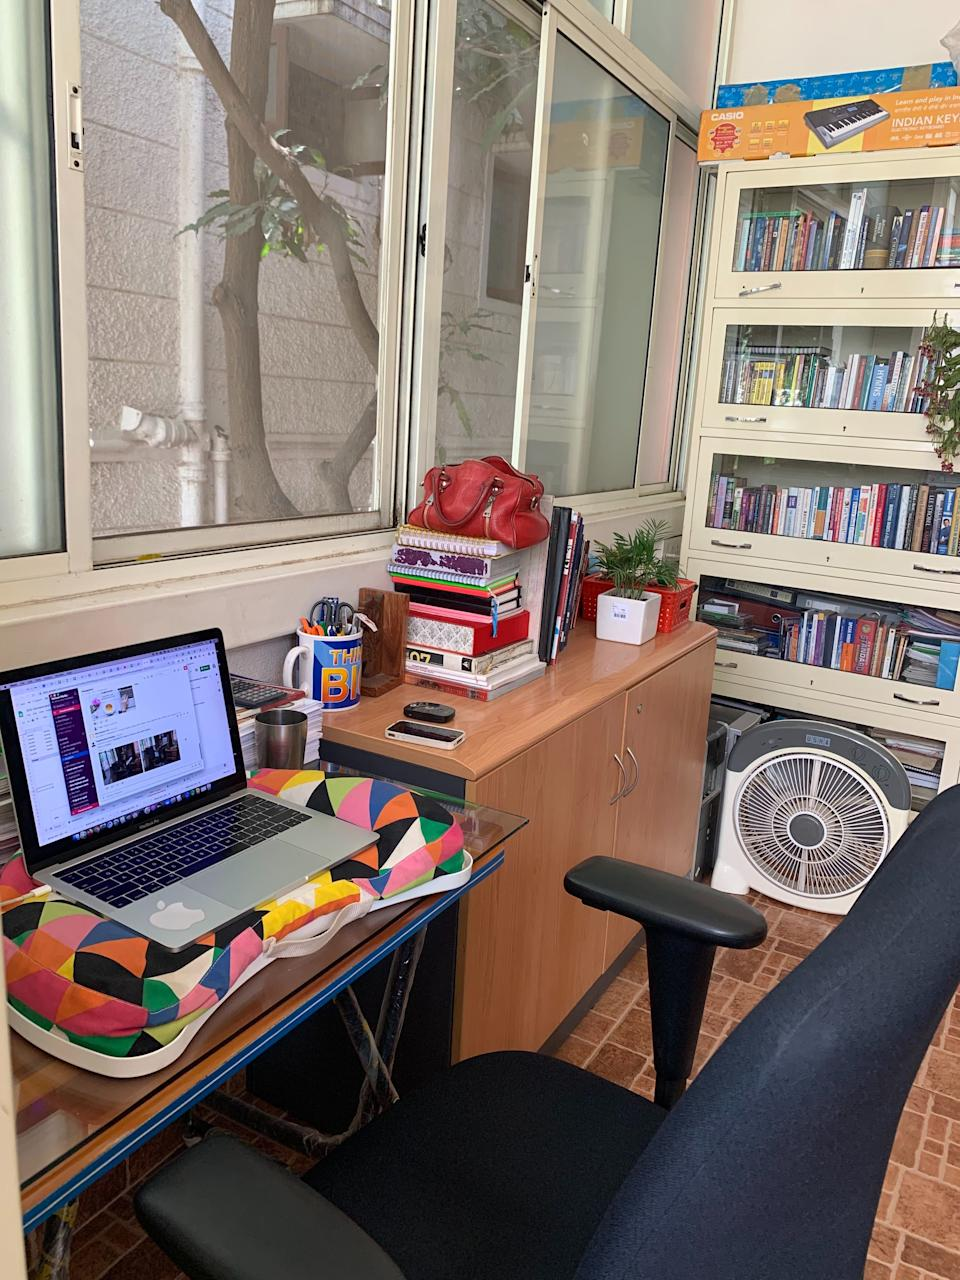 When you'd rather work from home with or without lockdown <em>Photo credit: Jessica Leen Prabhakar</em>